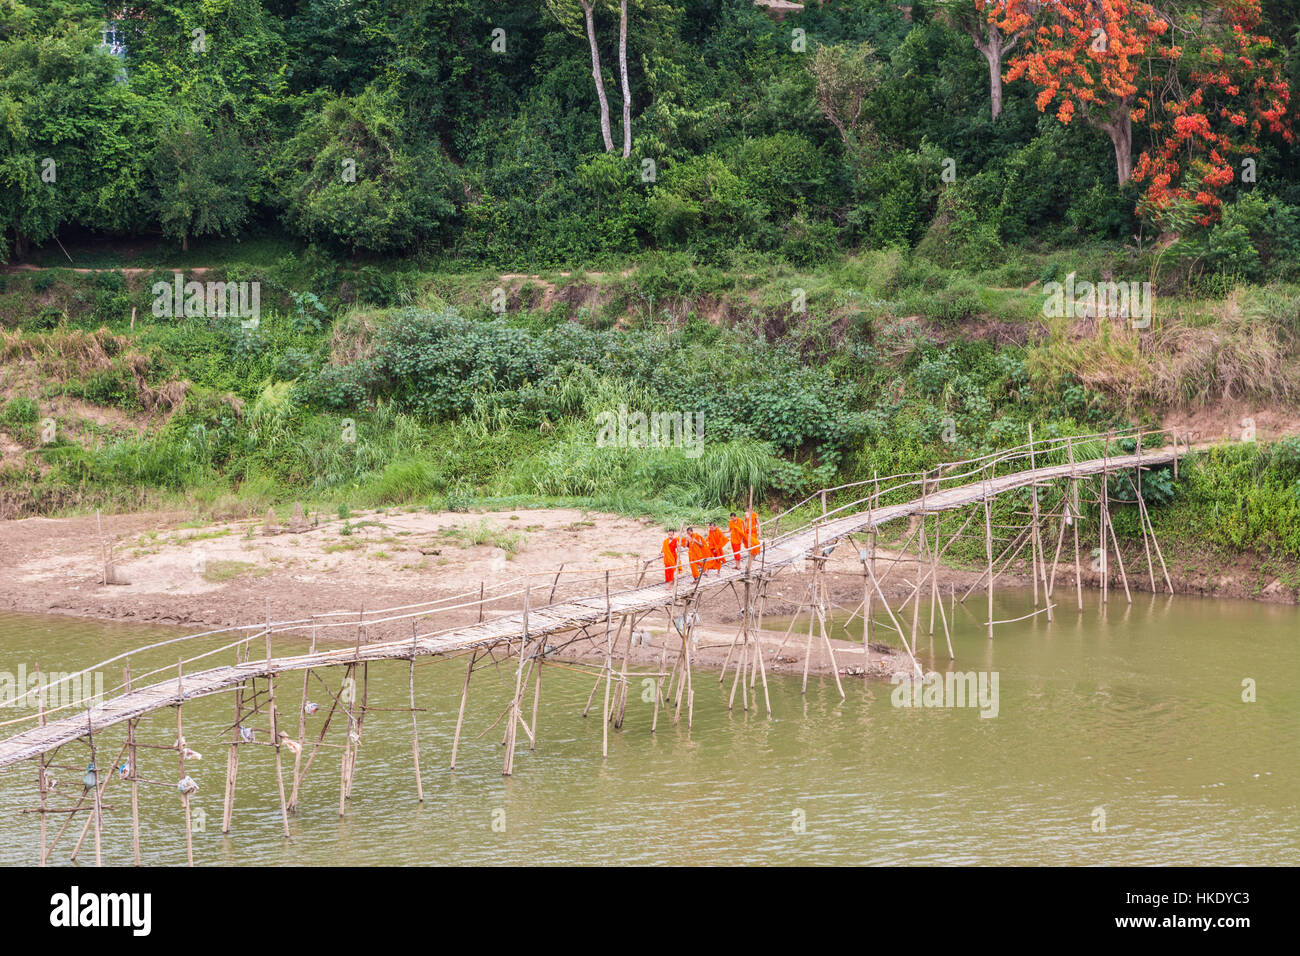 LUANG PRABANG, LAOS - MAY 16 2015: Buddhist monks cross a wooden bridge on the Nam Ou river in Luang Prabang in - Stock Image